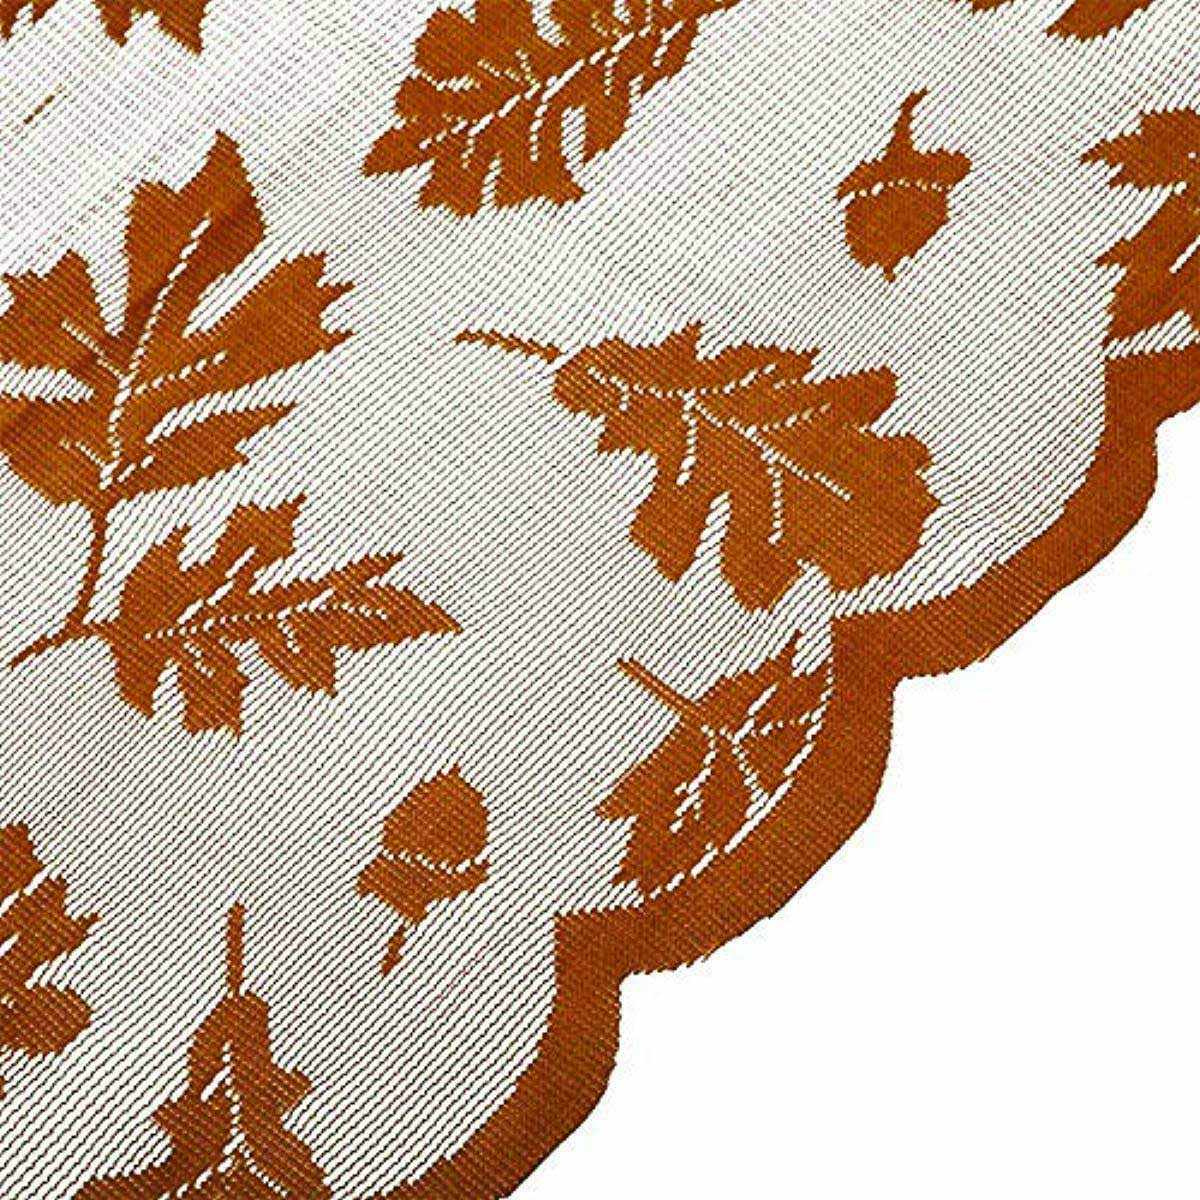 Maple Leaf Table Runner Thanksgiving Decorations Tablecloth For Fall Parties Restaurant Decor Rectangle Table Runners Aliexpress